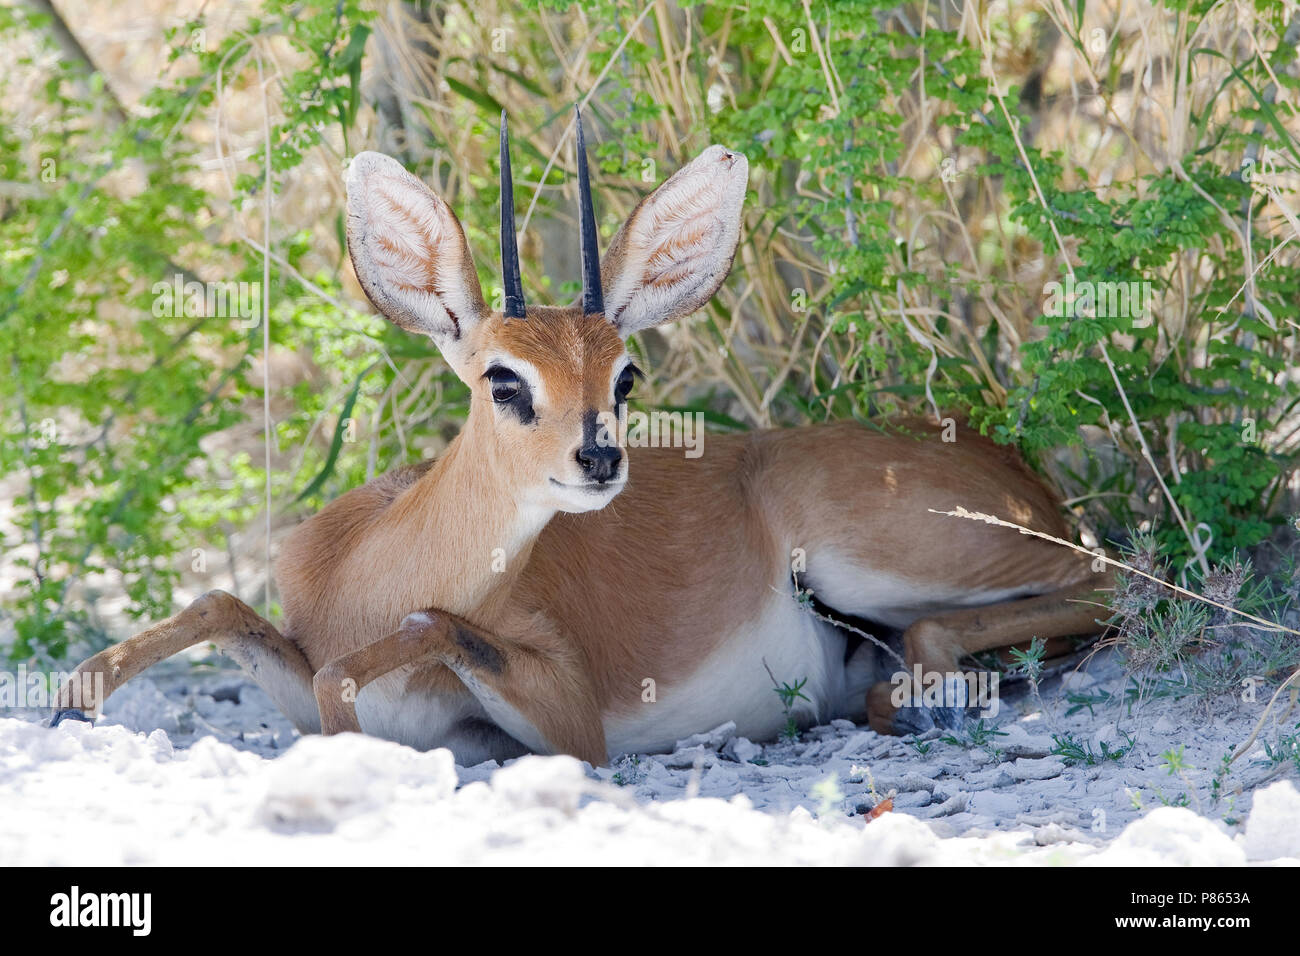 Steenbokantilope liggend in schaduw Namibie, Steenbok lying in shadow Namibia - Stock Image